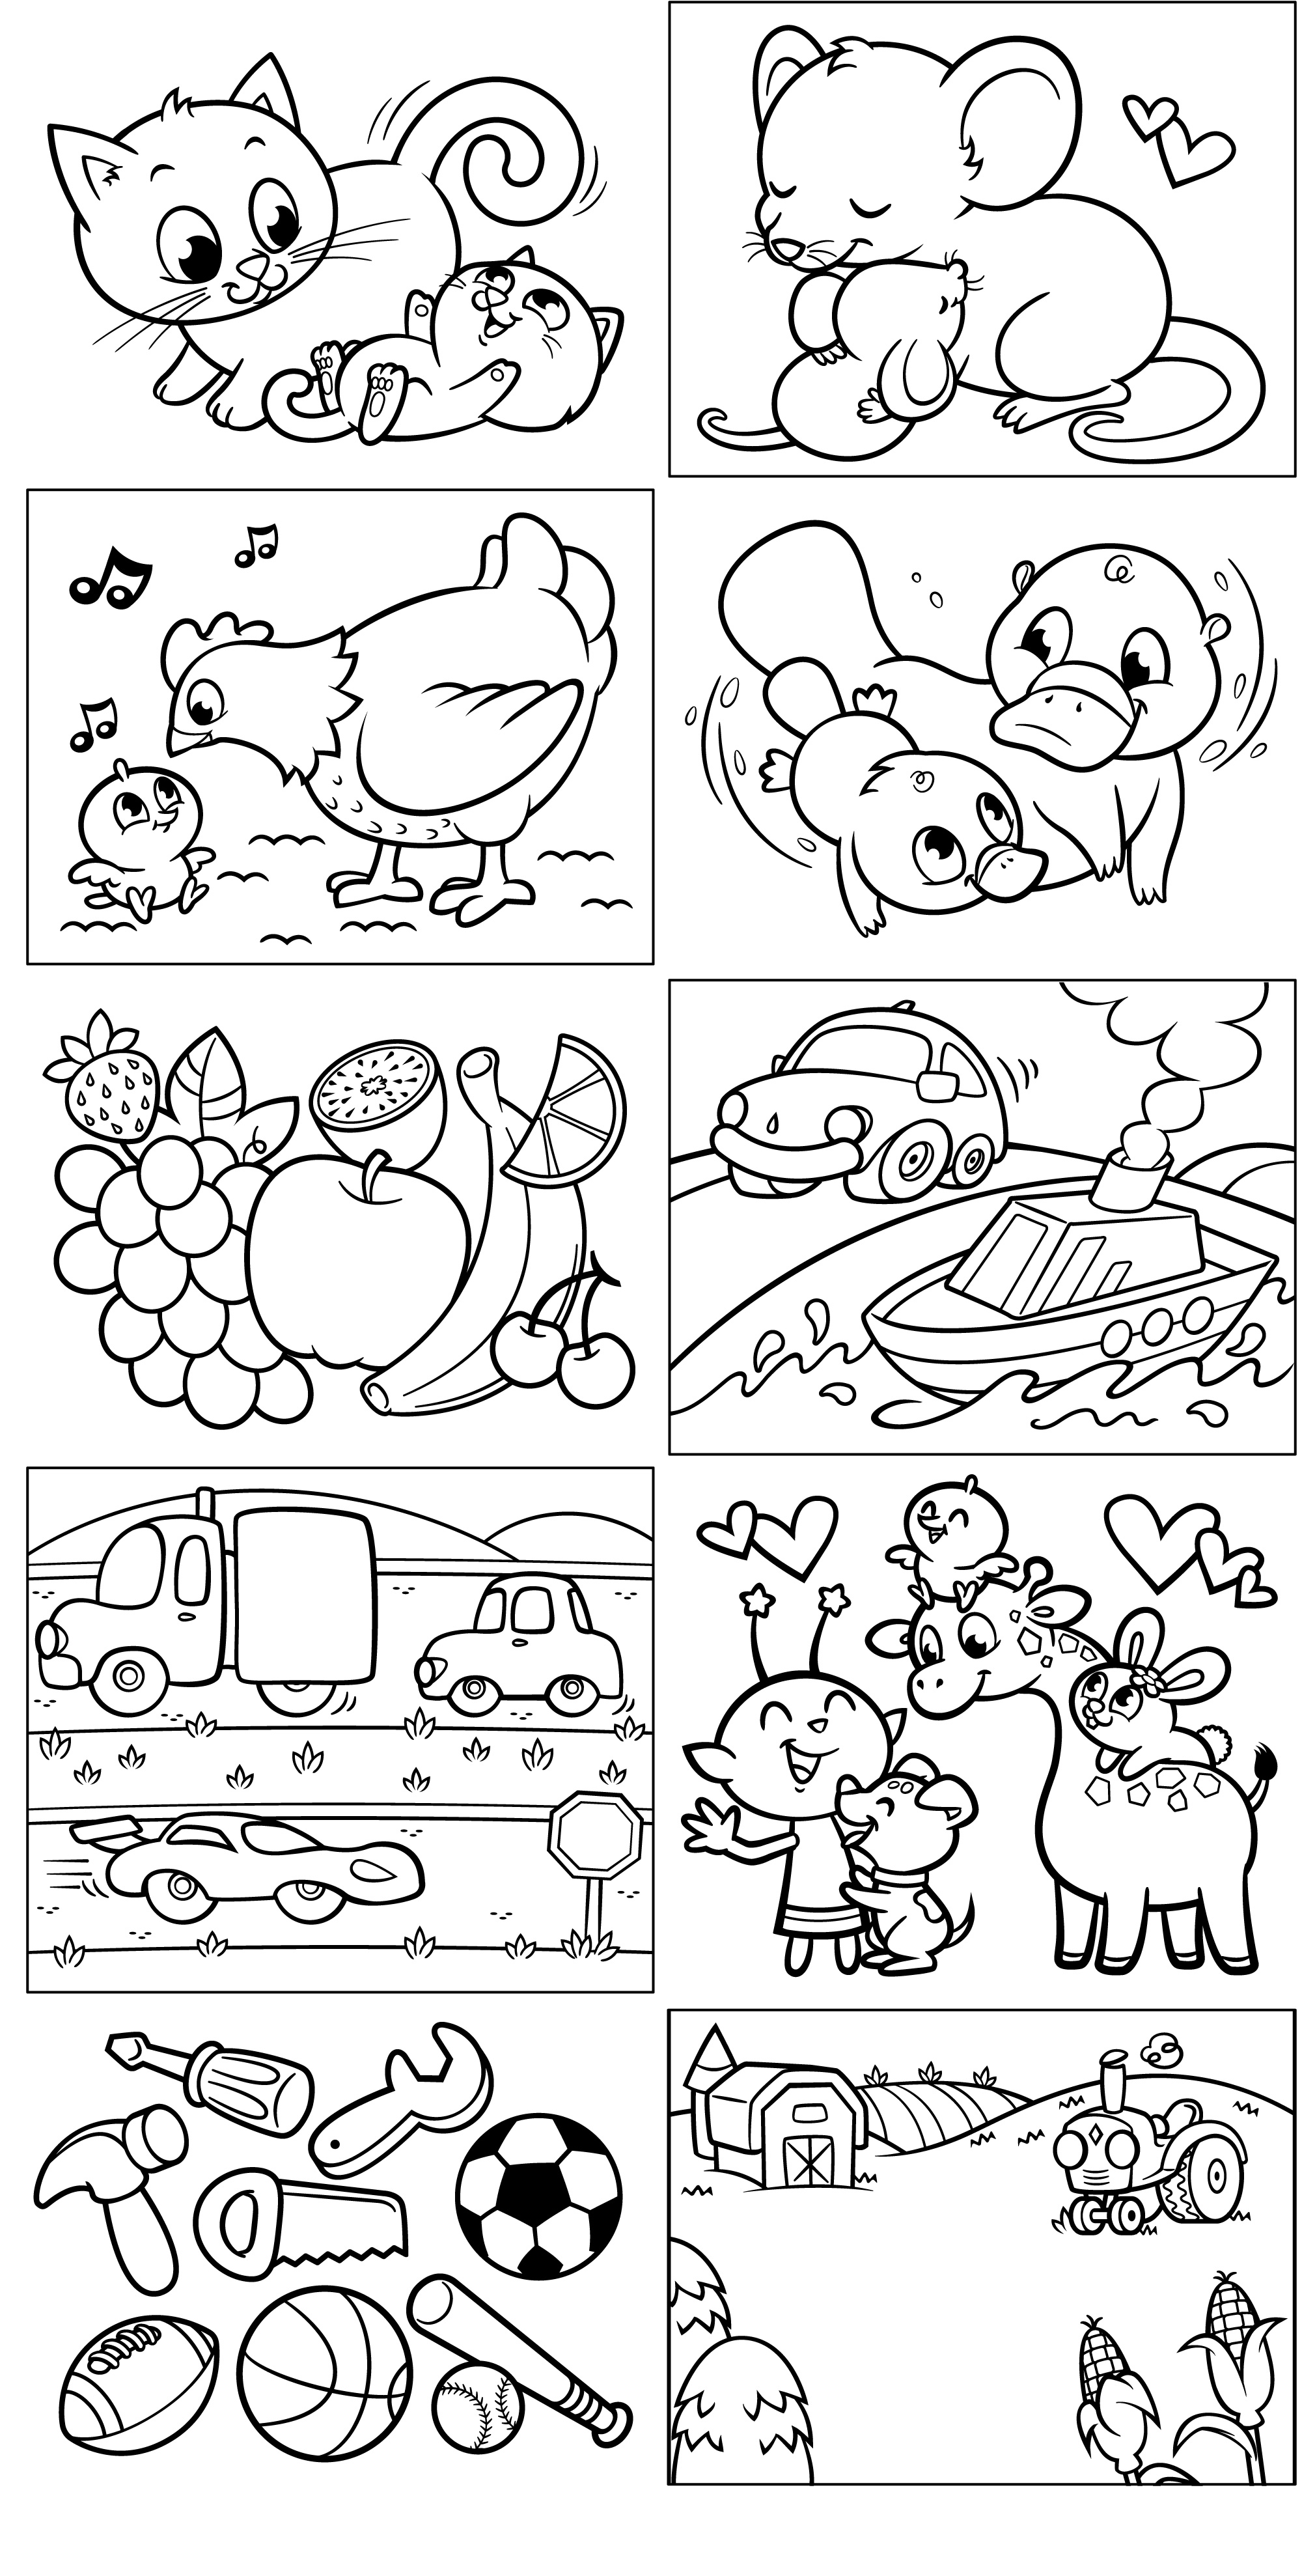 Coloring Pages Opposites For Preschoolers Printable